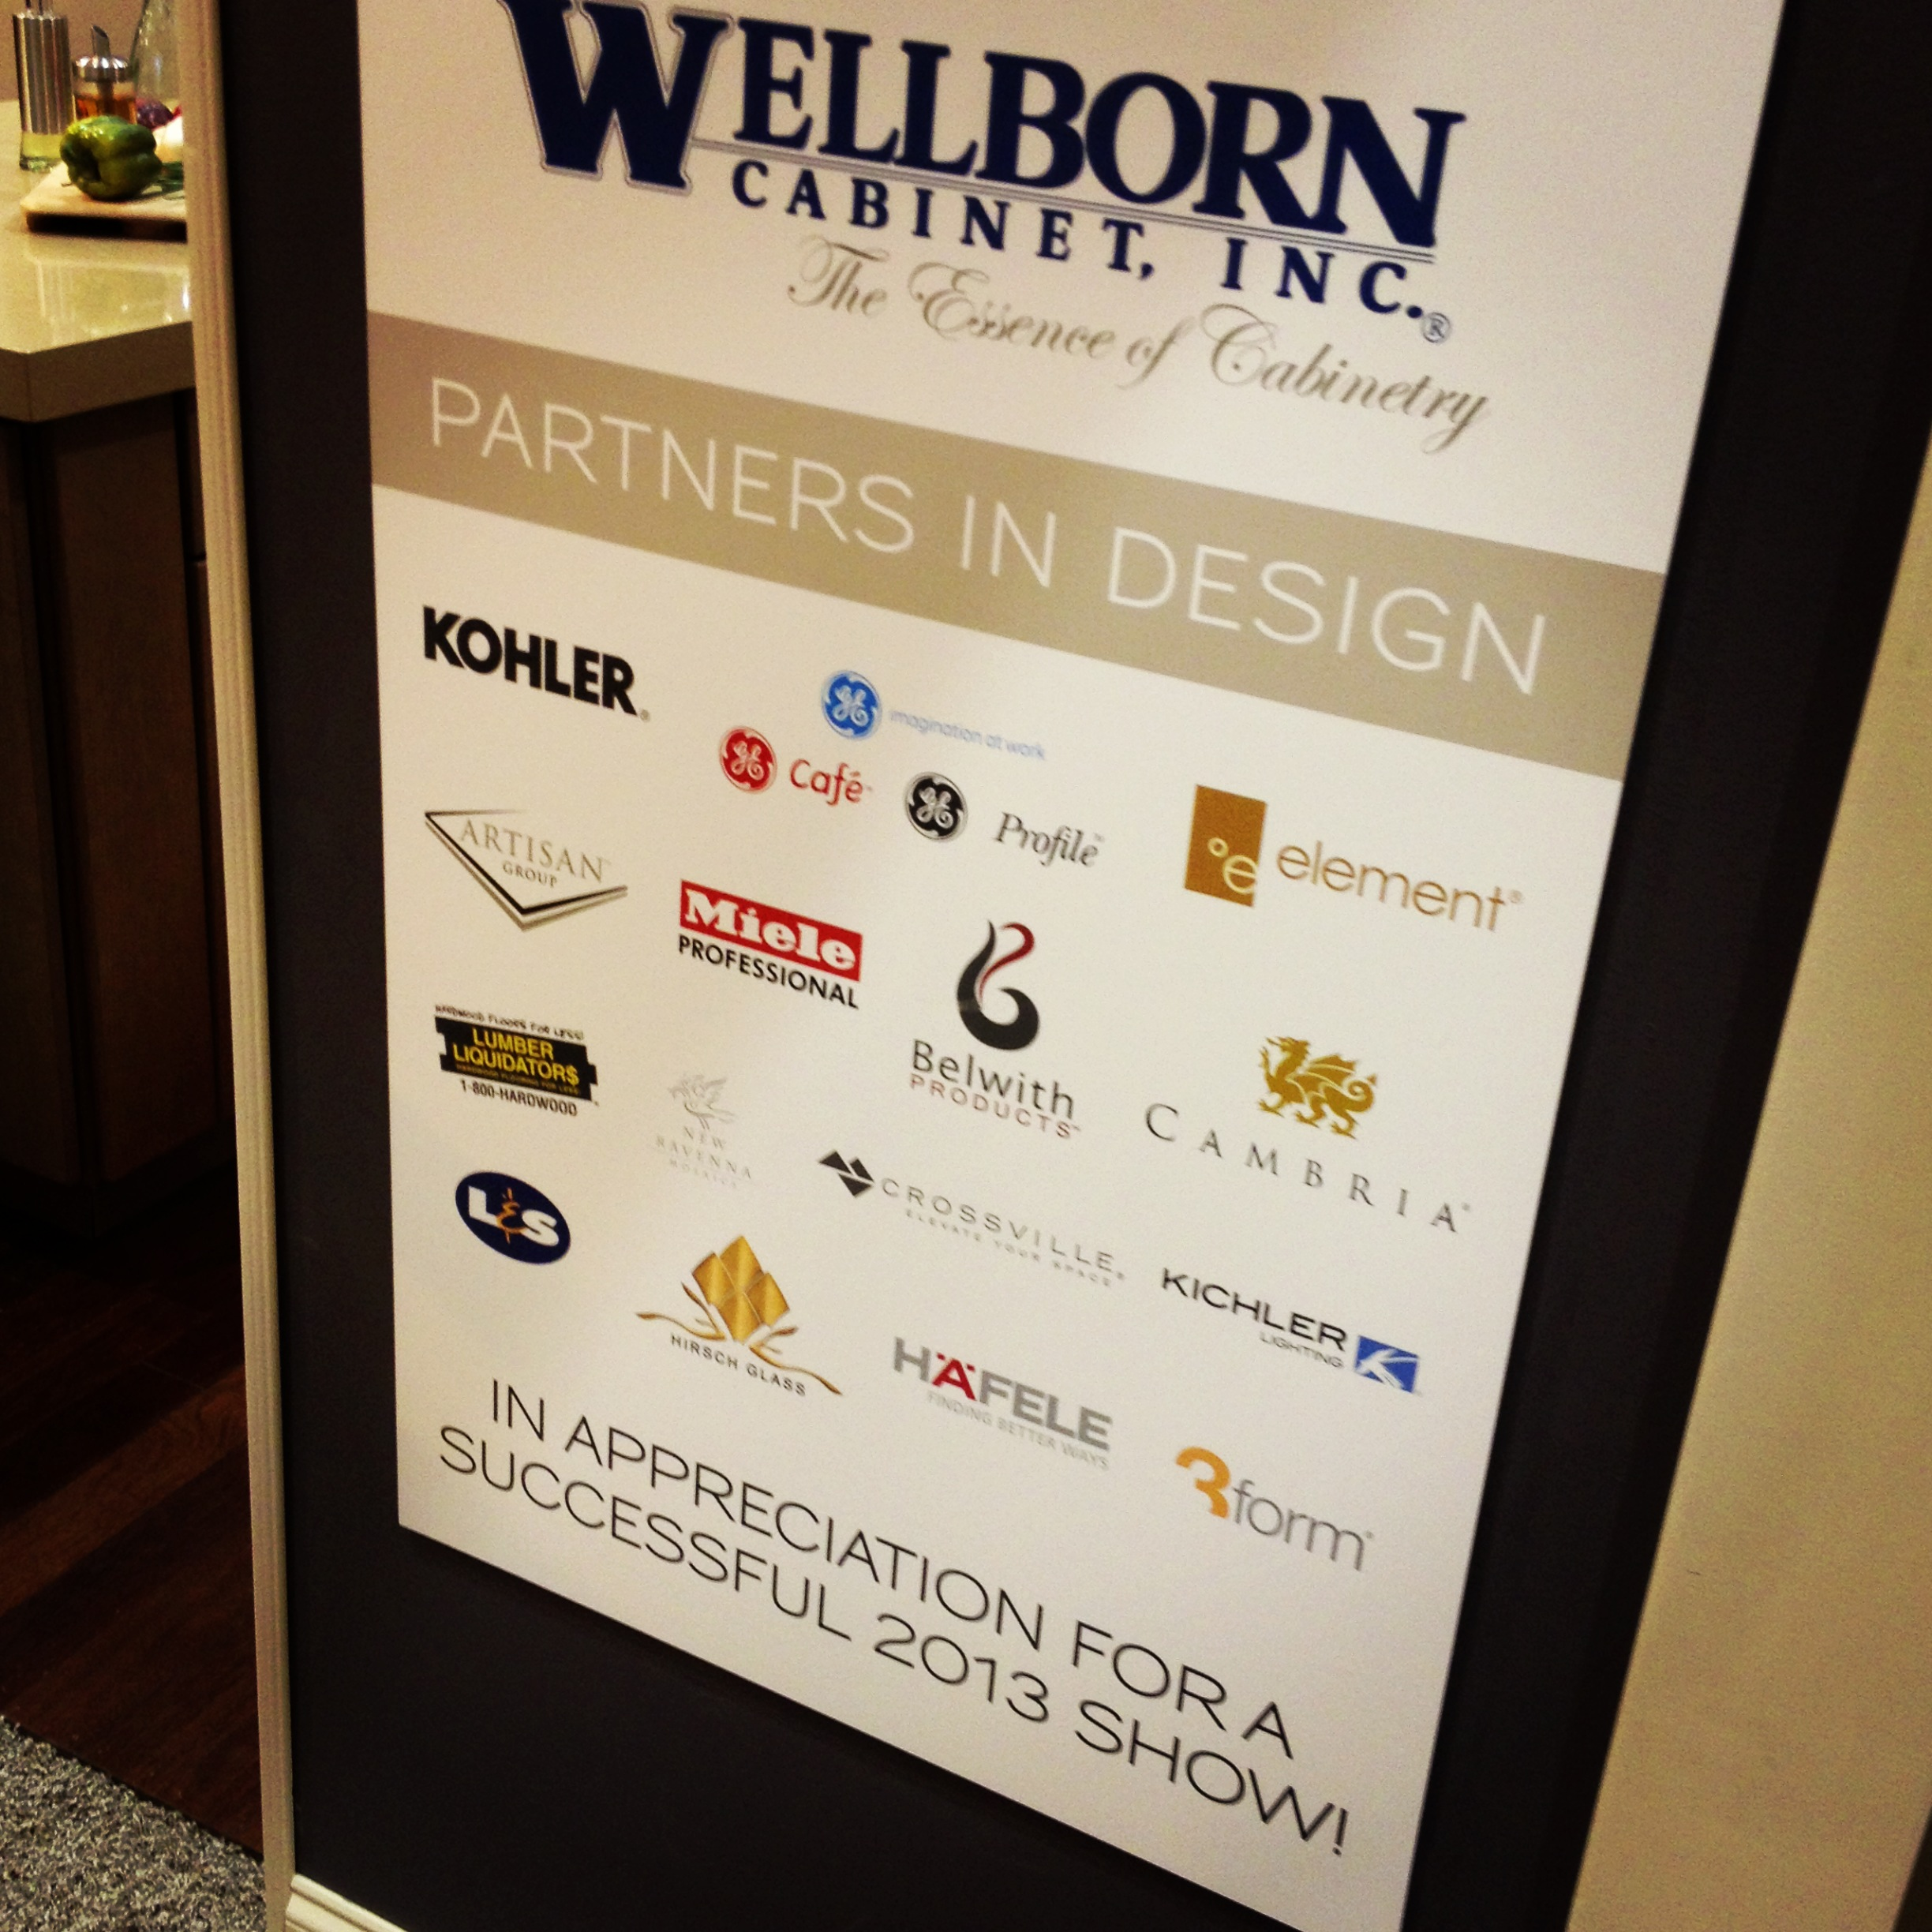 Thanks to all our Partners!